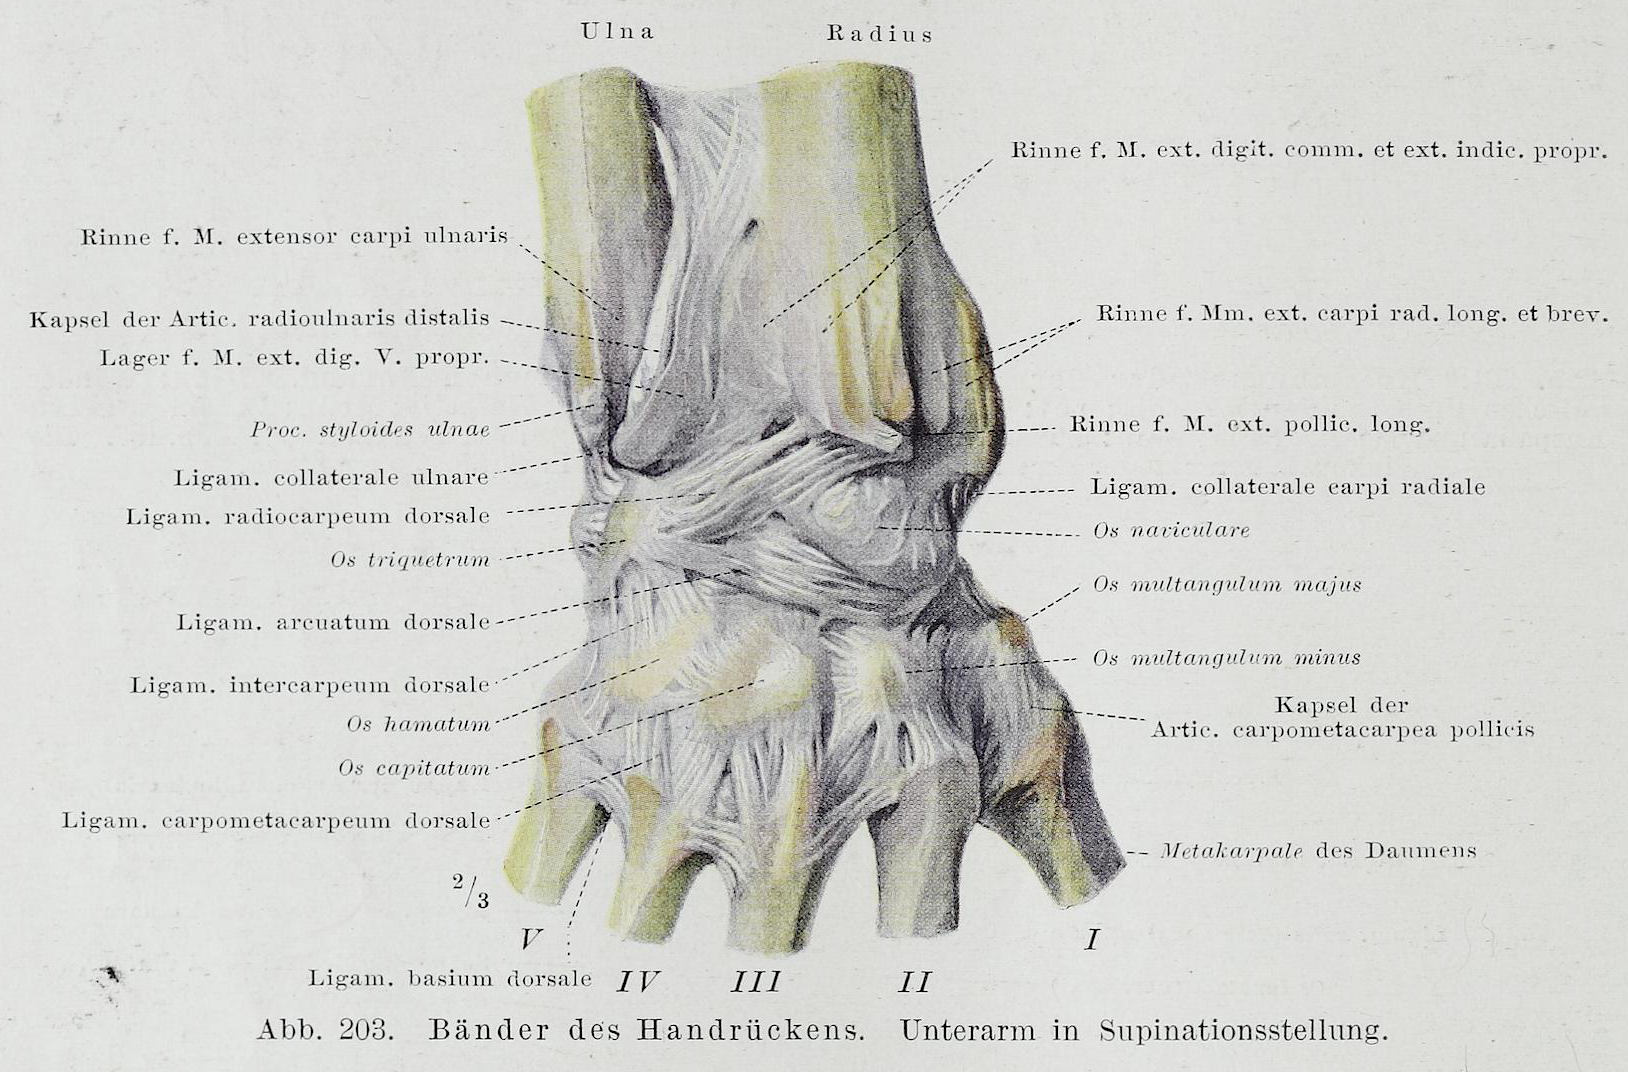 File:Braus 1921 203.png - Wikimedia Commons